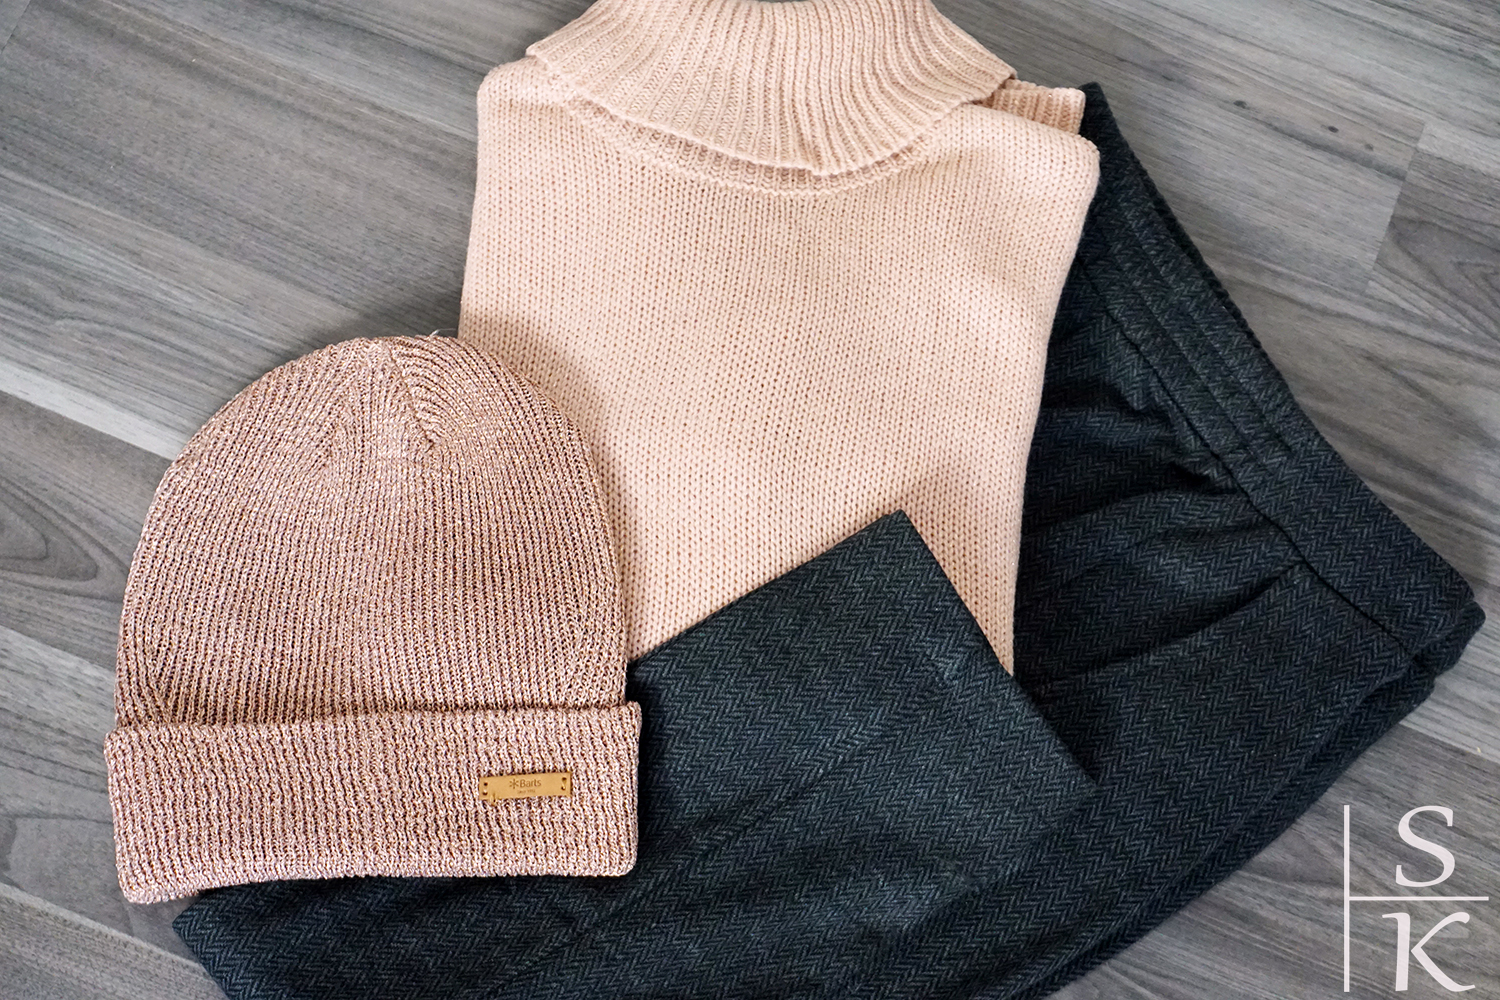 Fashion Trends Haul für Herbst 2018 Horizont-Blog